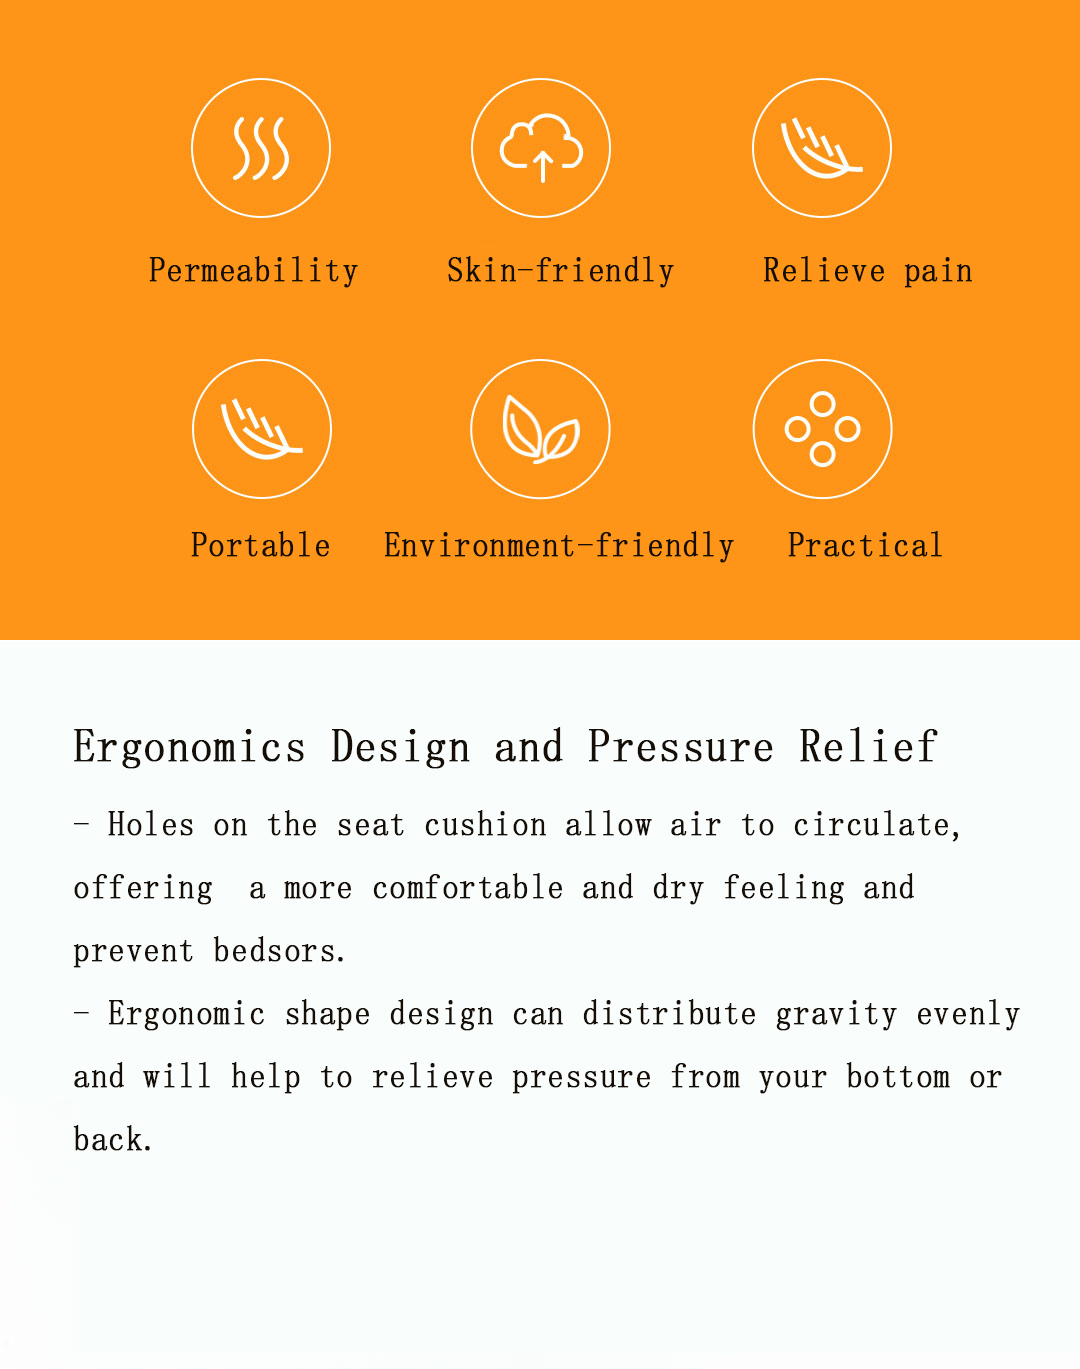 Inflatable Portable TUP Ergonomic design Car Seat Cover Mattress Air Cushion From Xiaomi Youpin